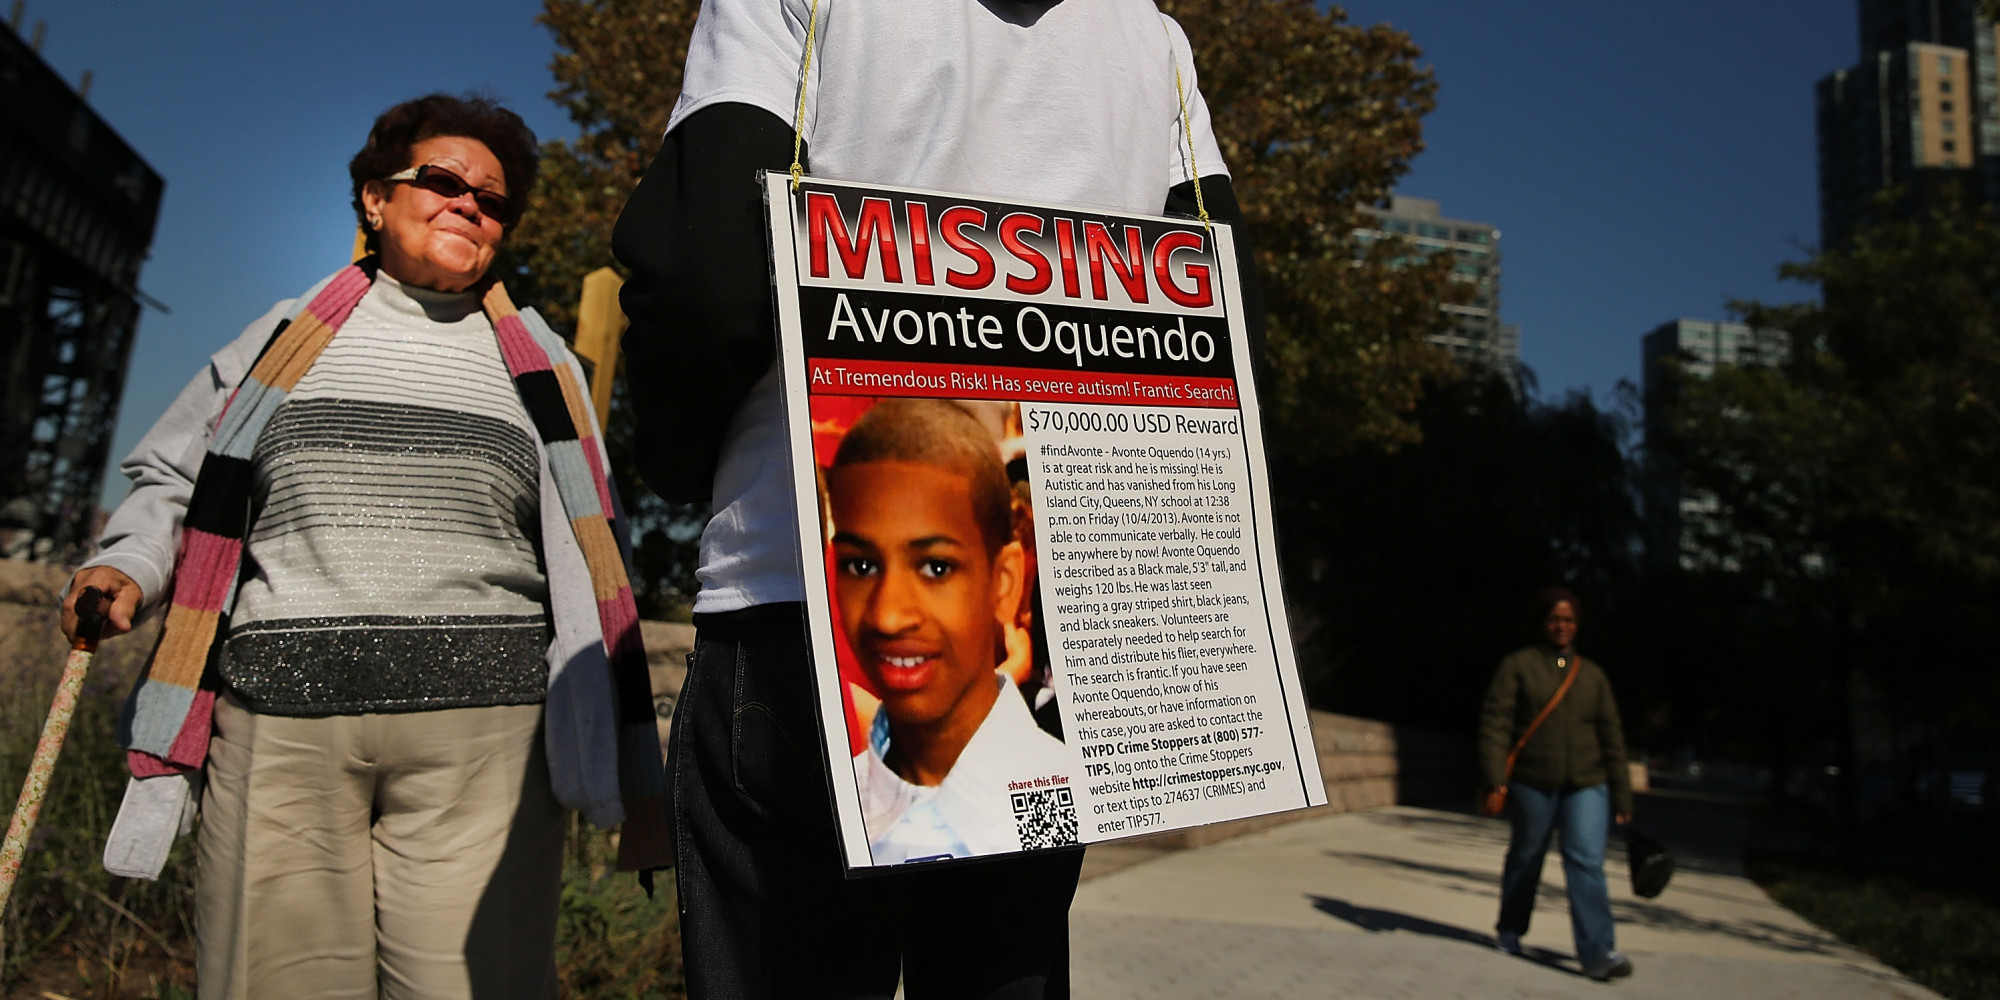 avonte oquendo It's been two months since the body of 14-year-old avonte oquendo was found in the river of new york, and now his older brother, danny, has written a letter to the city of new york, thanking people for coming together to try and find the autistic teen.